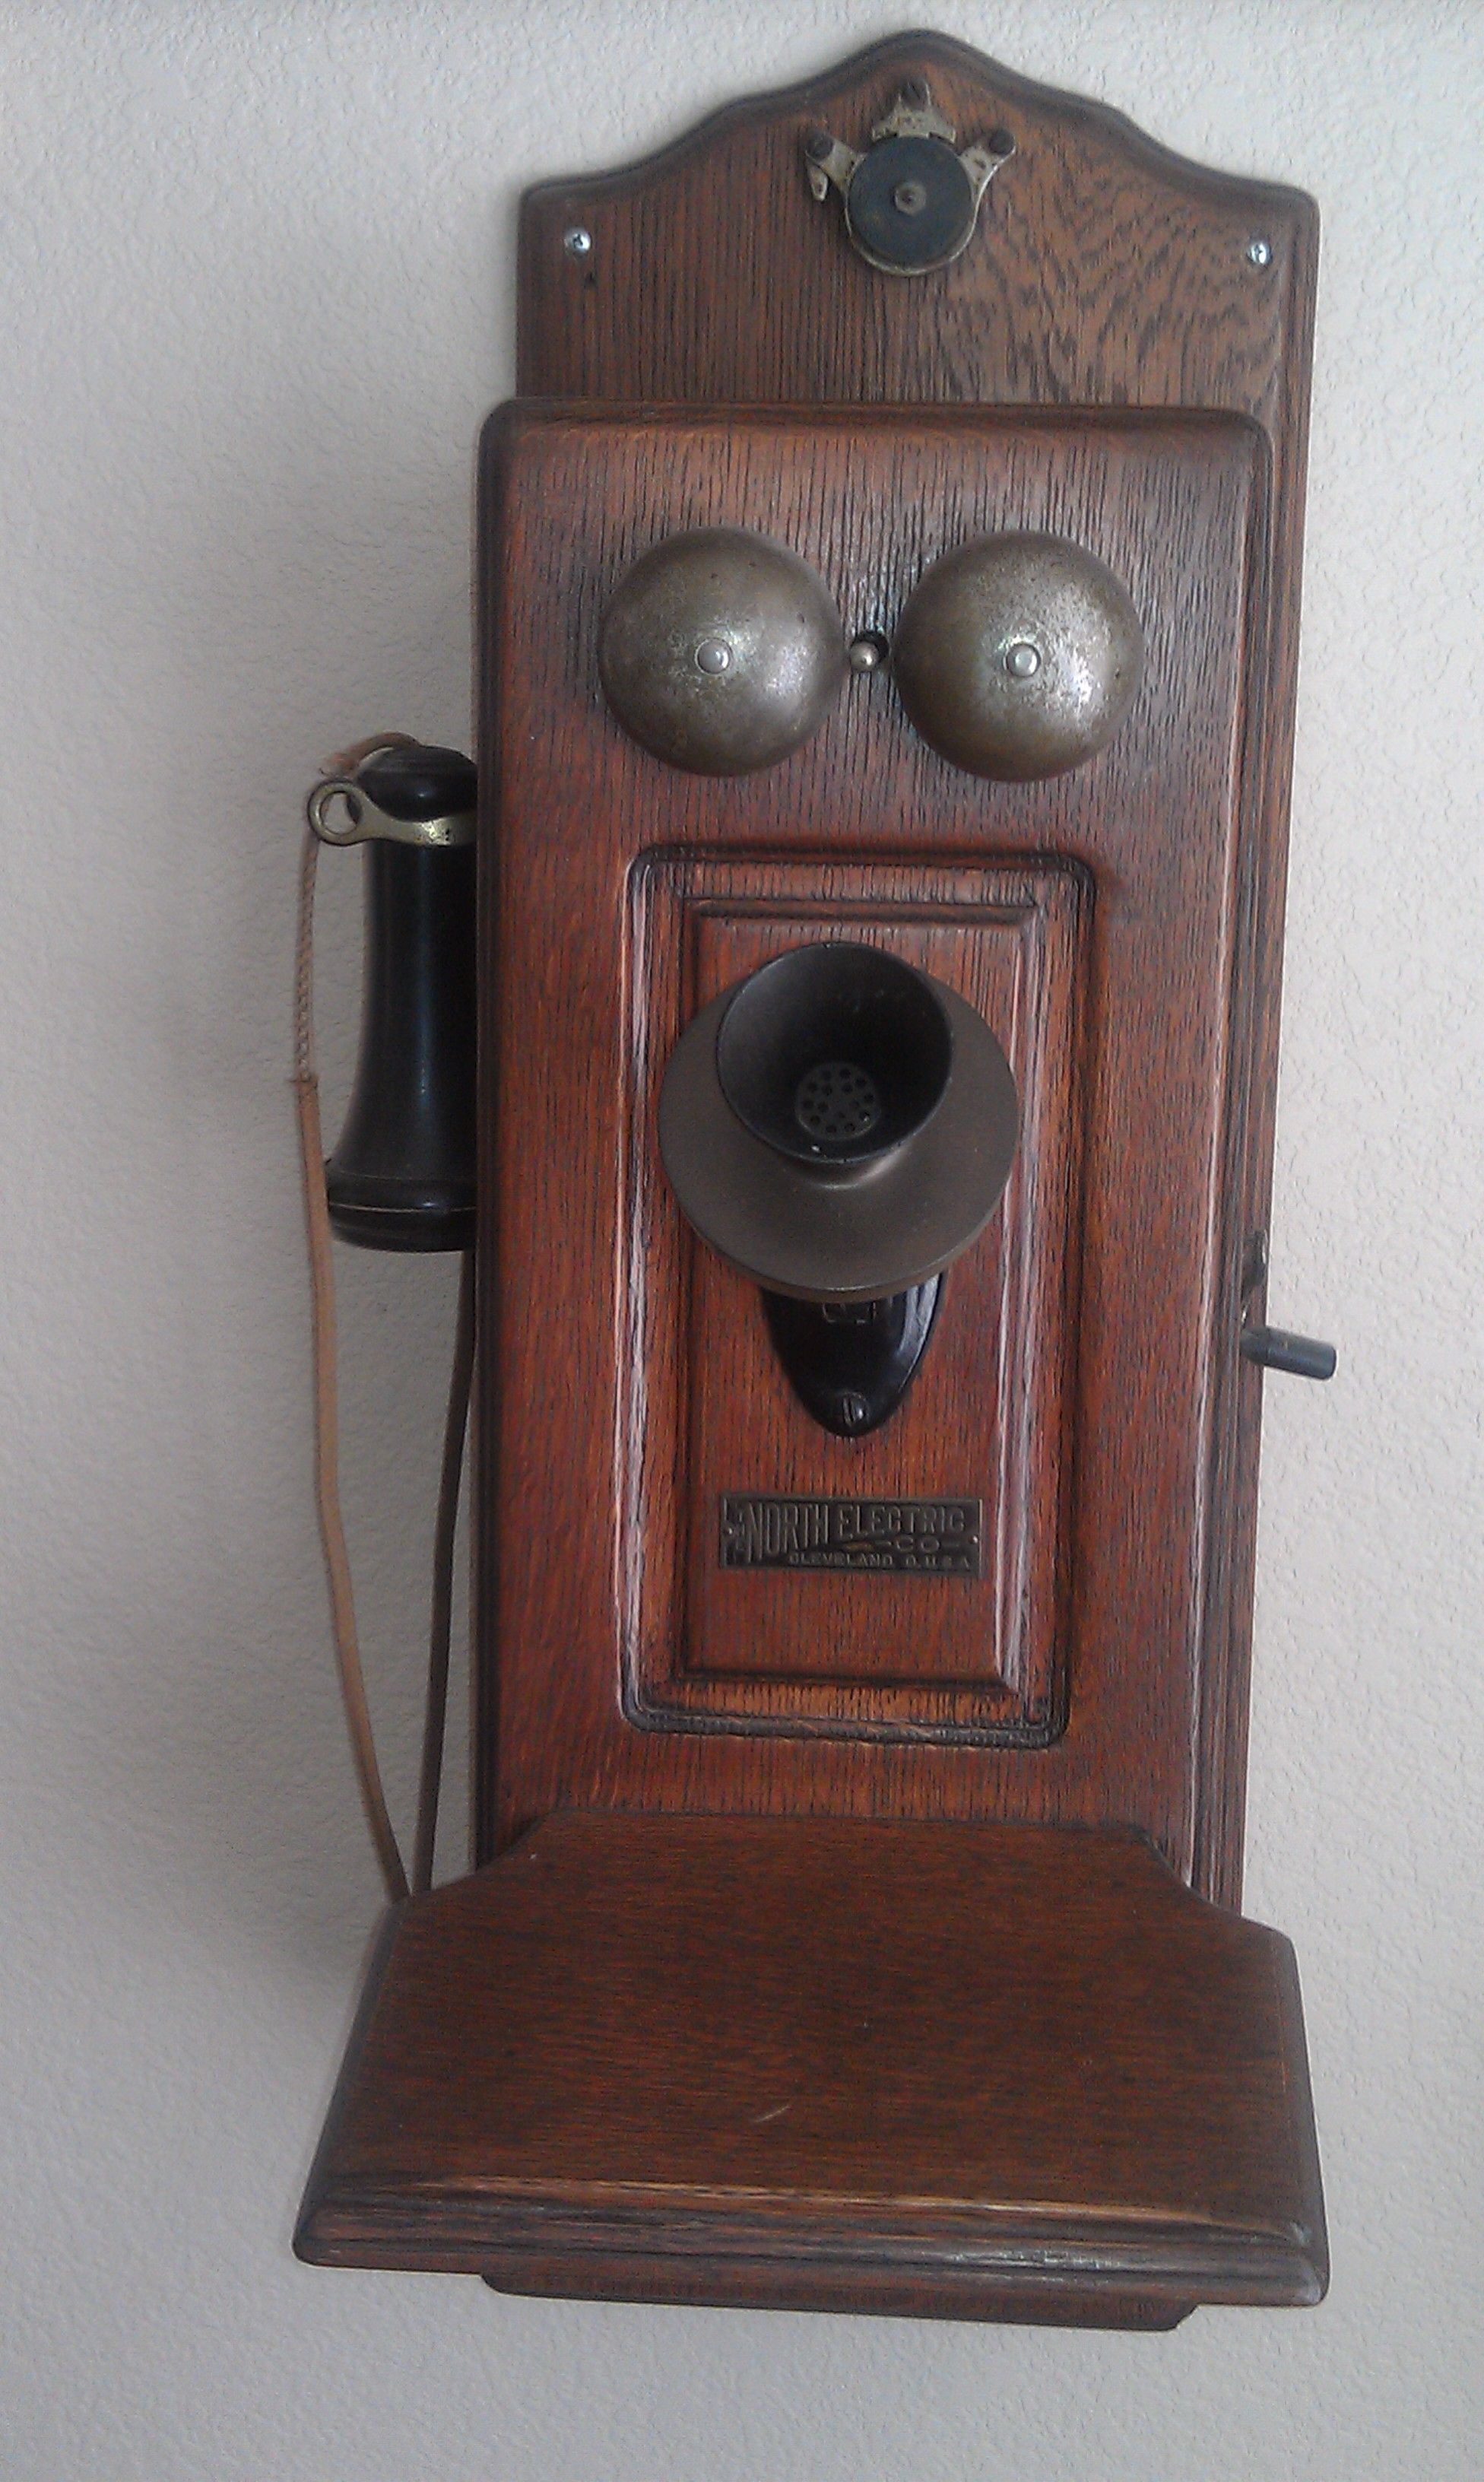 hight resolution of 1904 north electric co phone this was our first telephone